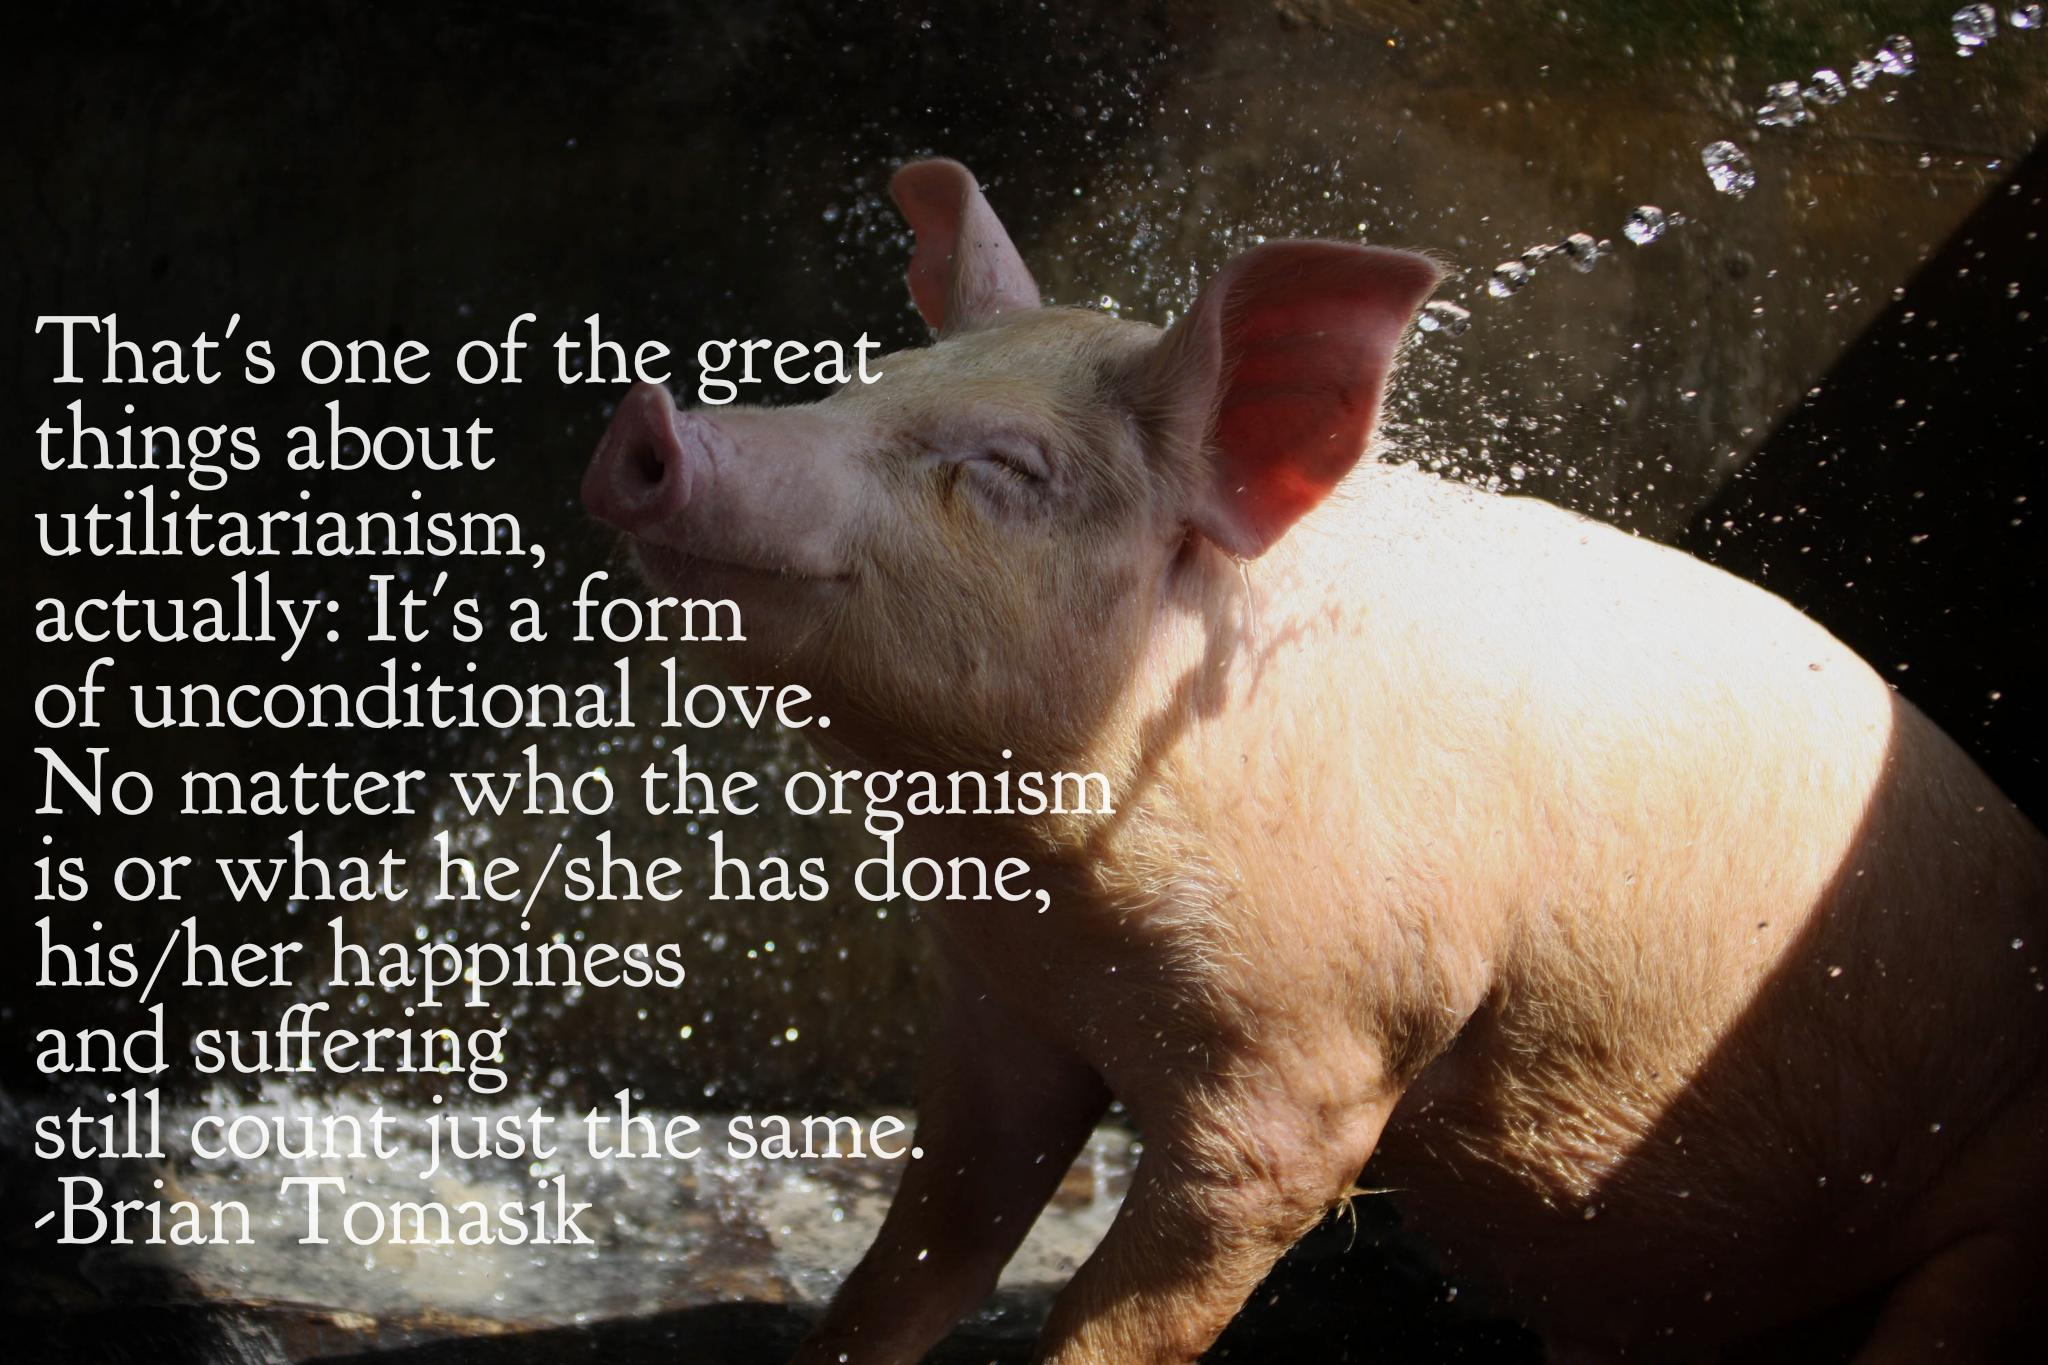 """That's one of the great things about utilitarianism, actually: It's a form of unconditional love. No matter who the organism is or what he/she has done, his/her happiness and suffering still count just the same."" -Brian Tomasik [2048×1365][OC]"